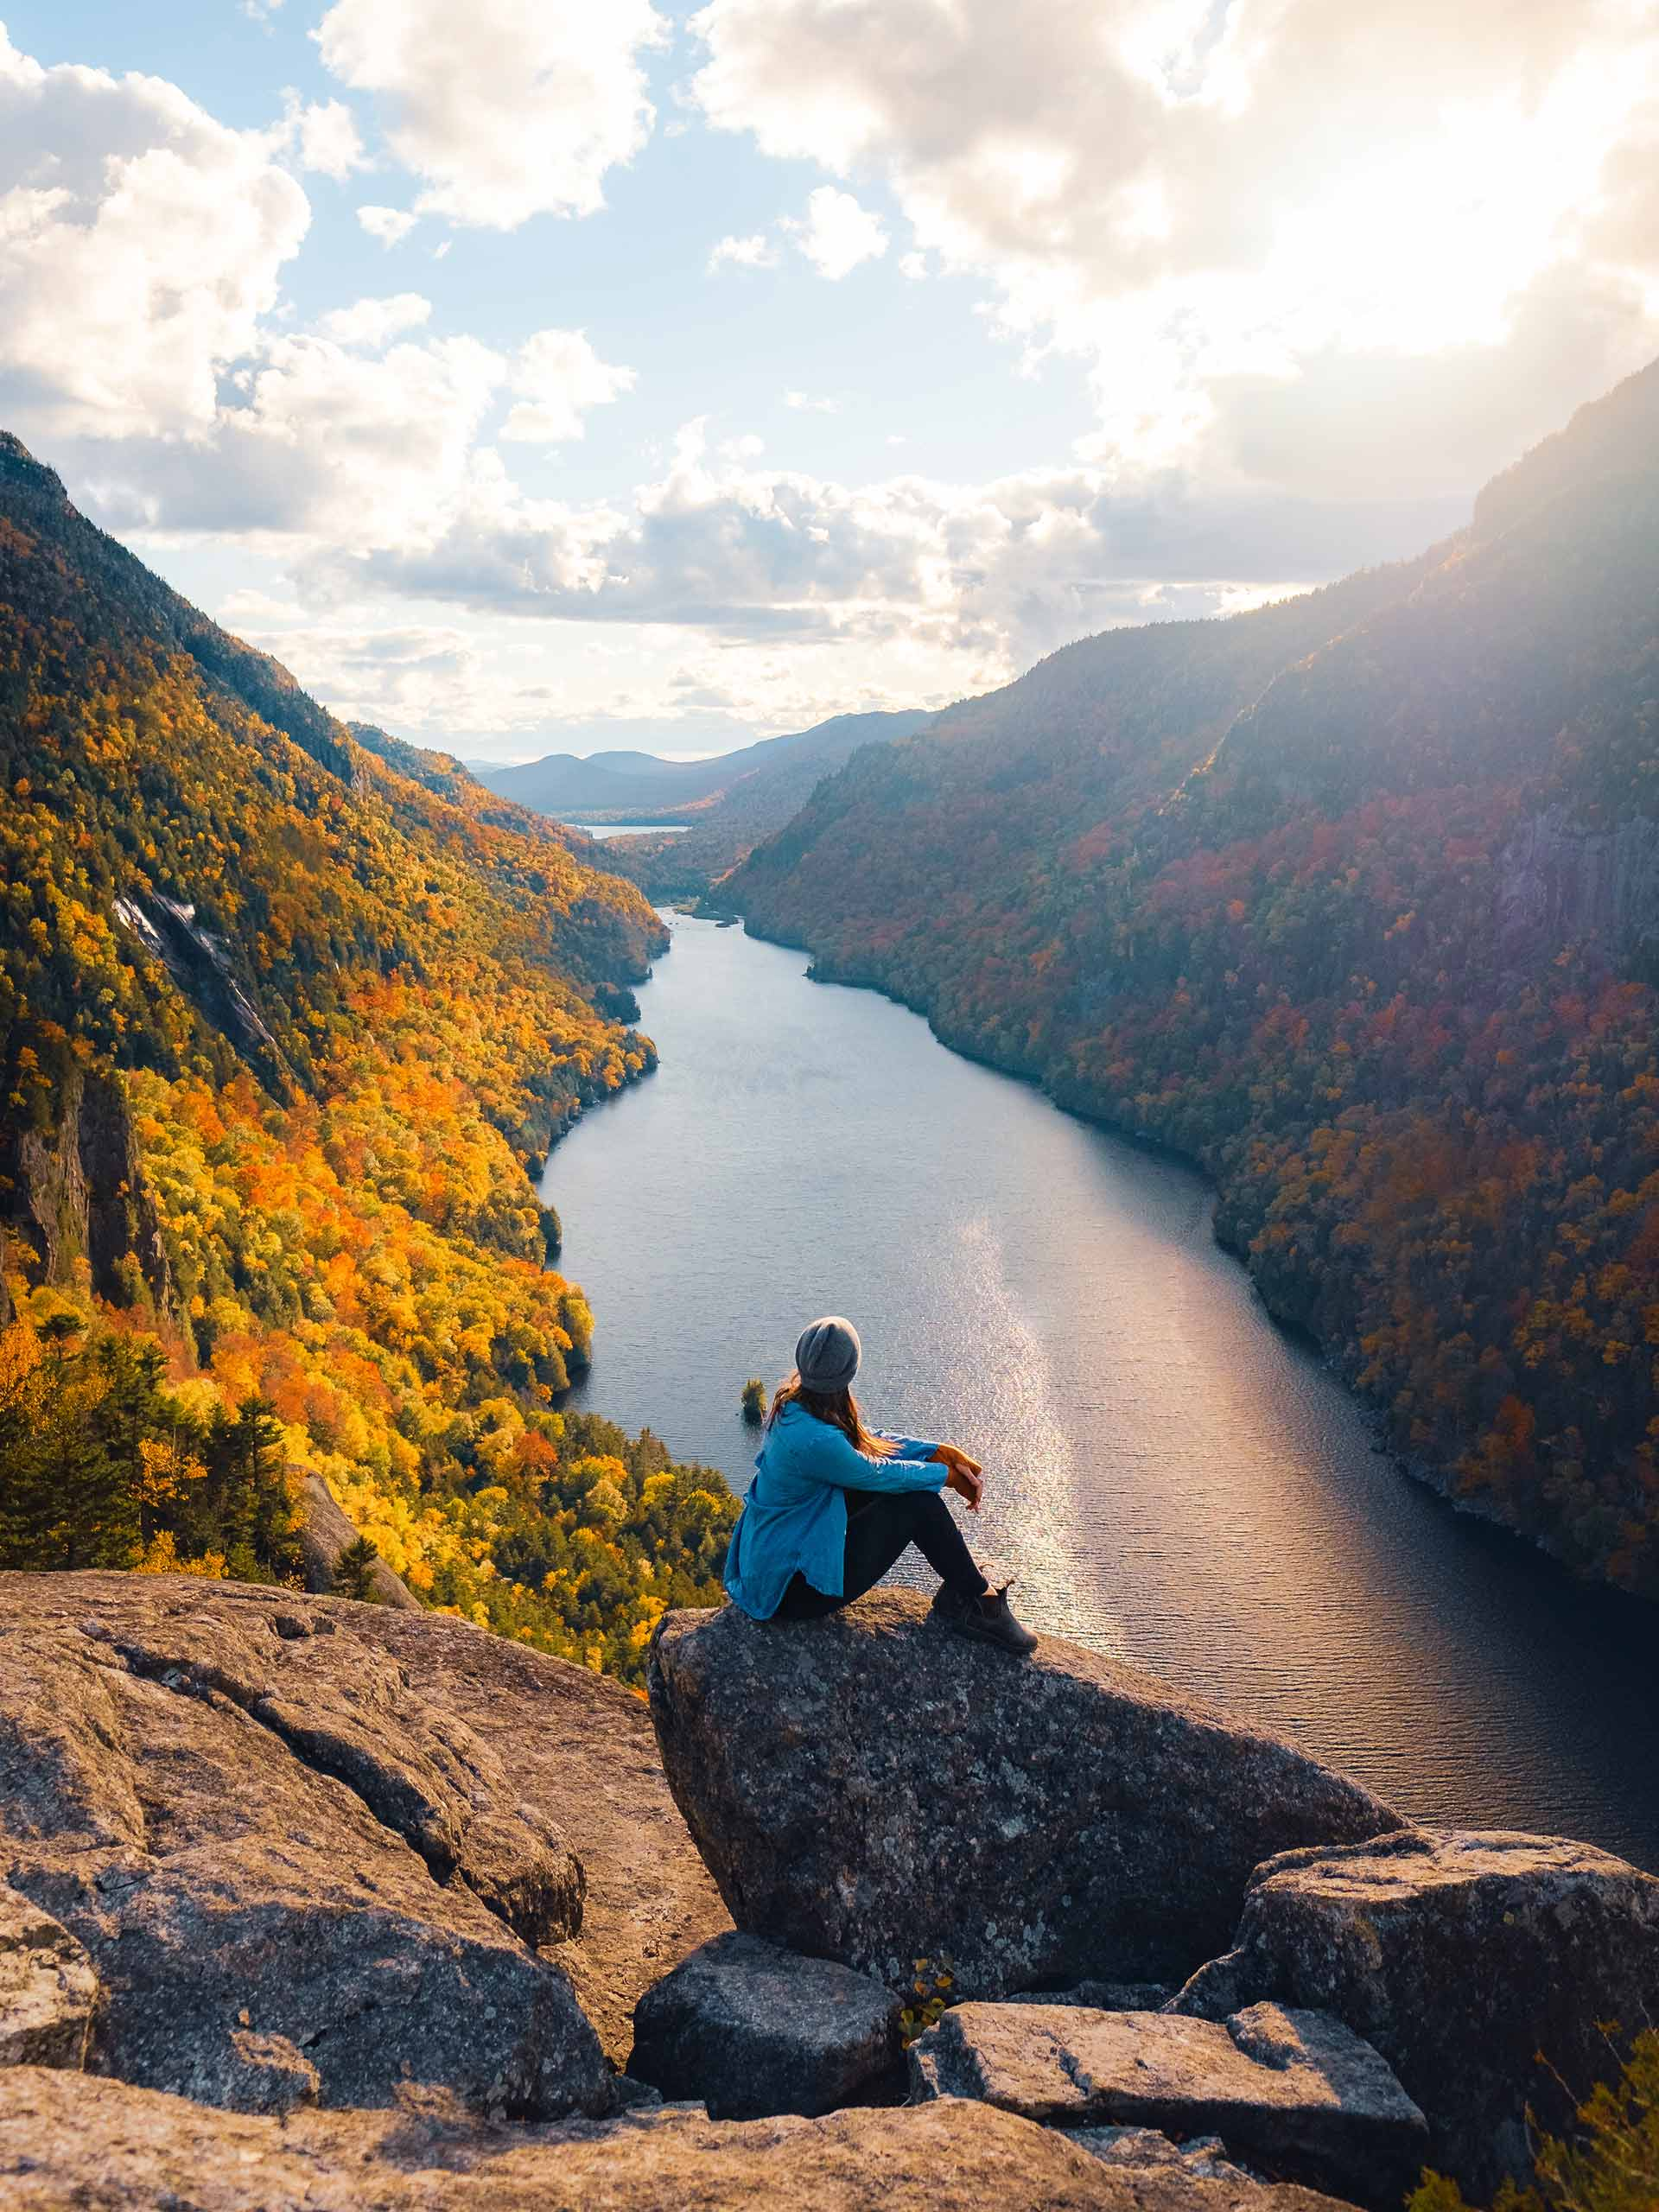 Sunset is the best time to hike Indian Head in Keene, NY